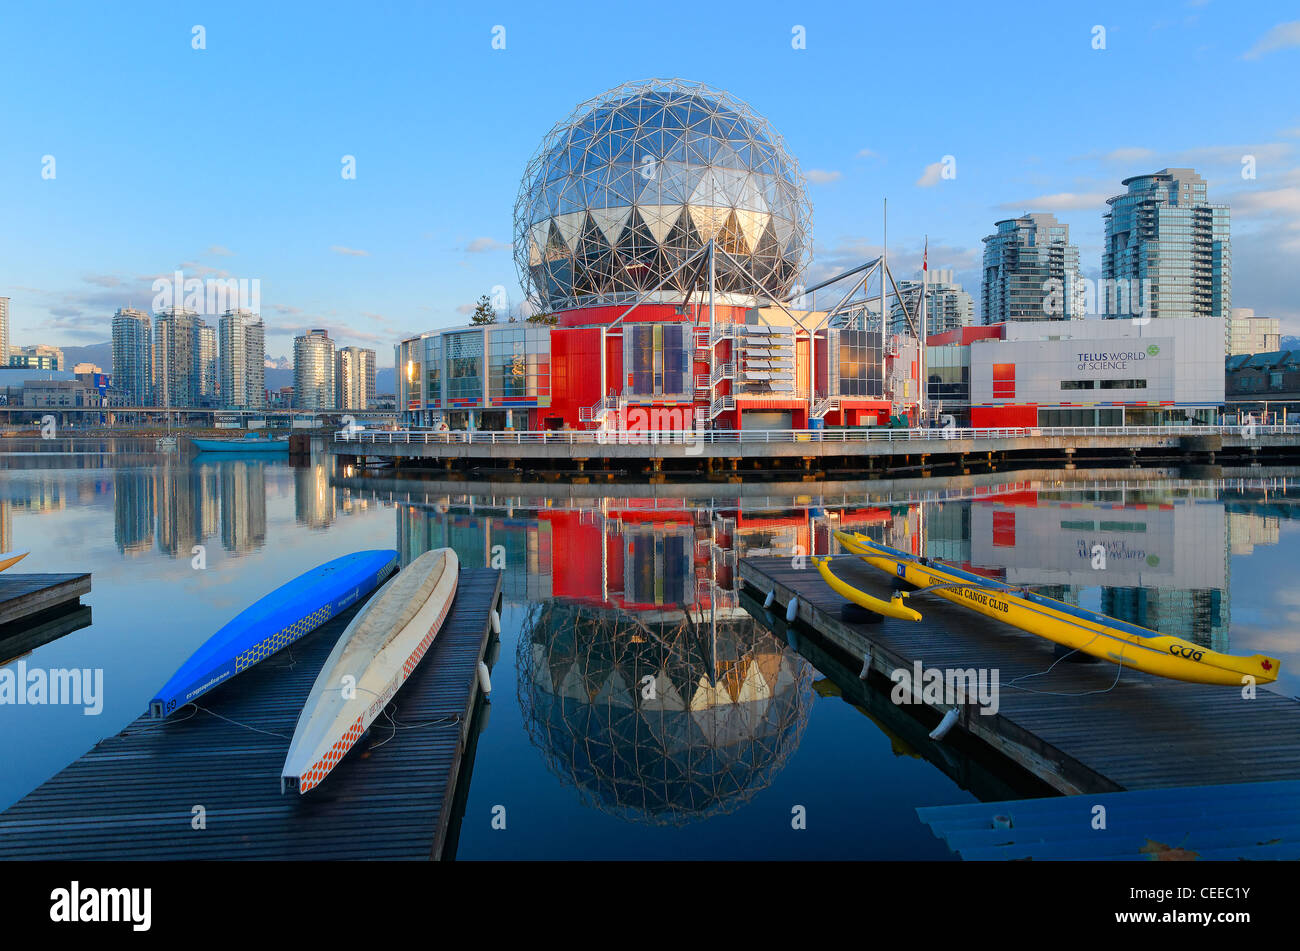 World of Science, False Creek, Vancouver British Columbia, Canada Photo Stock